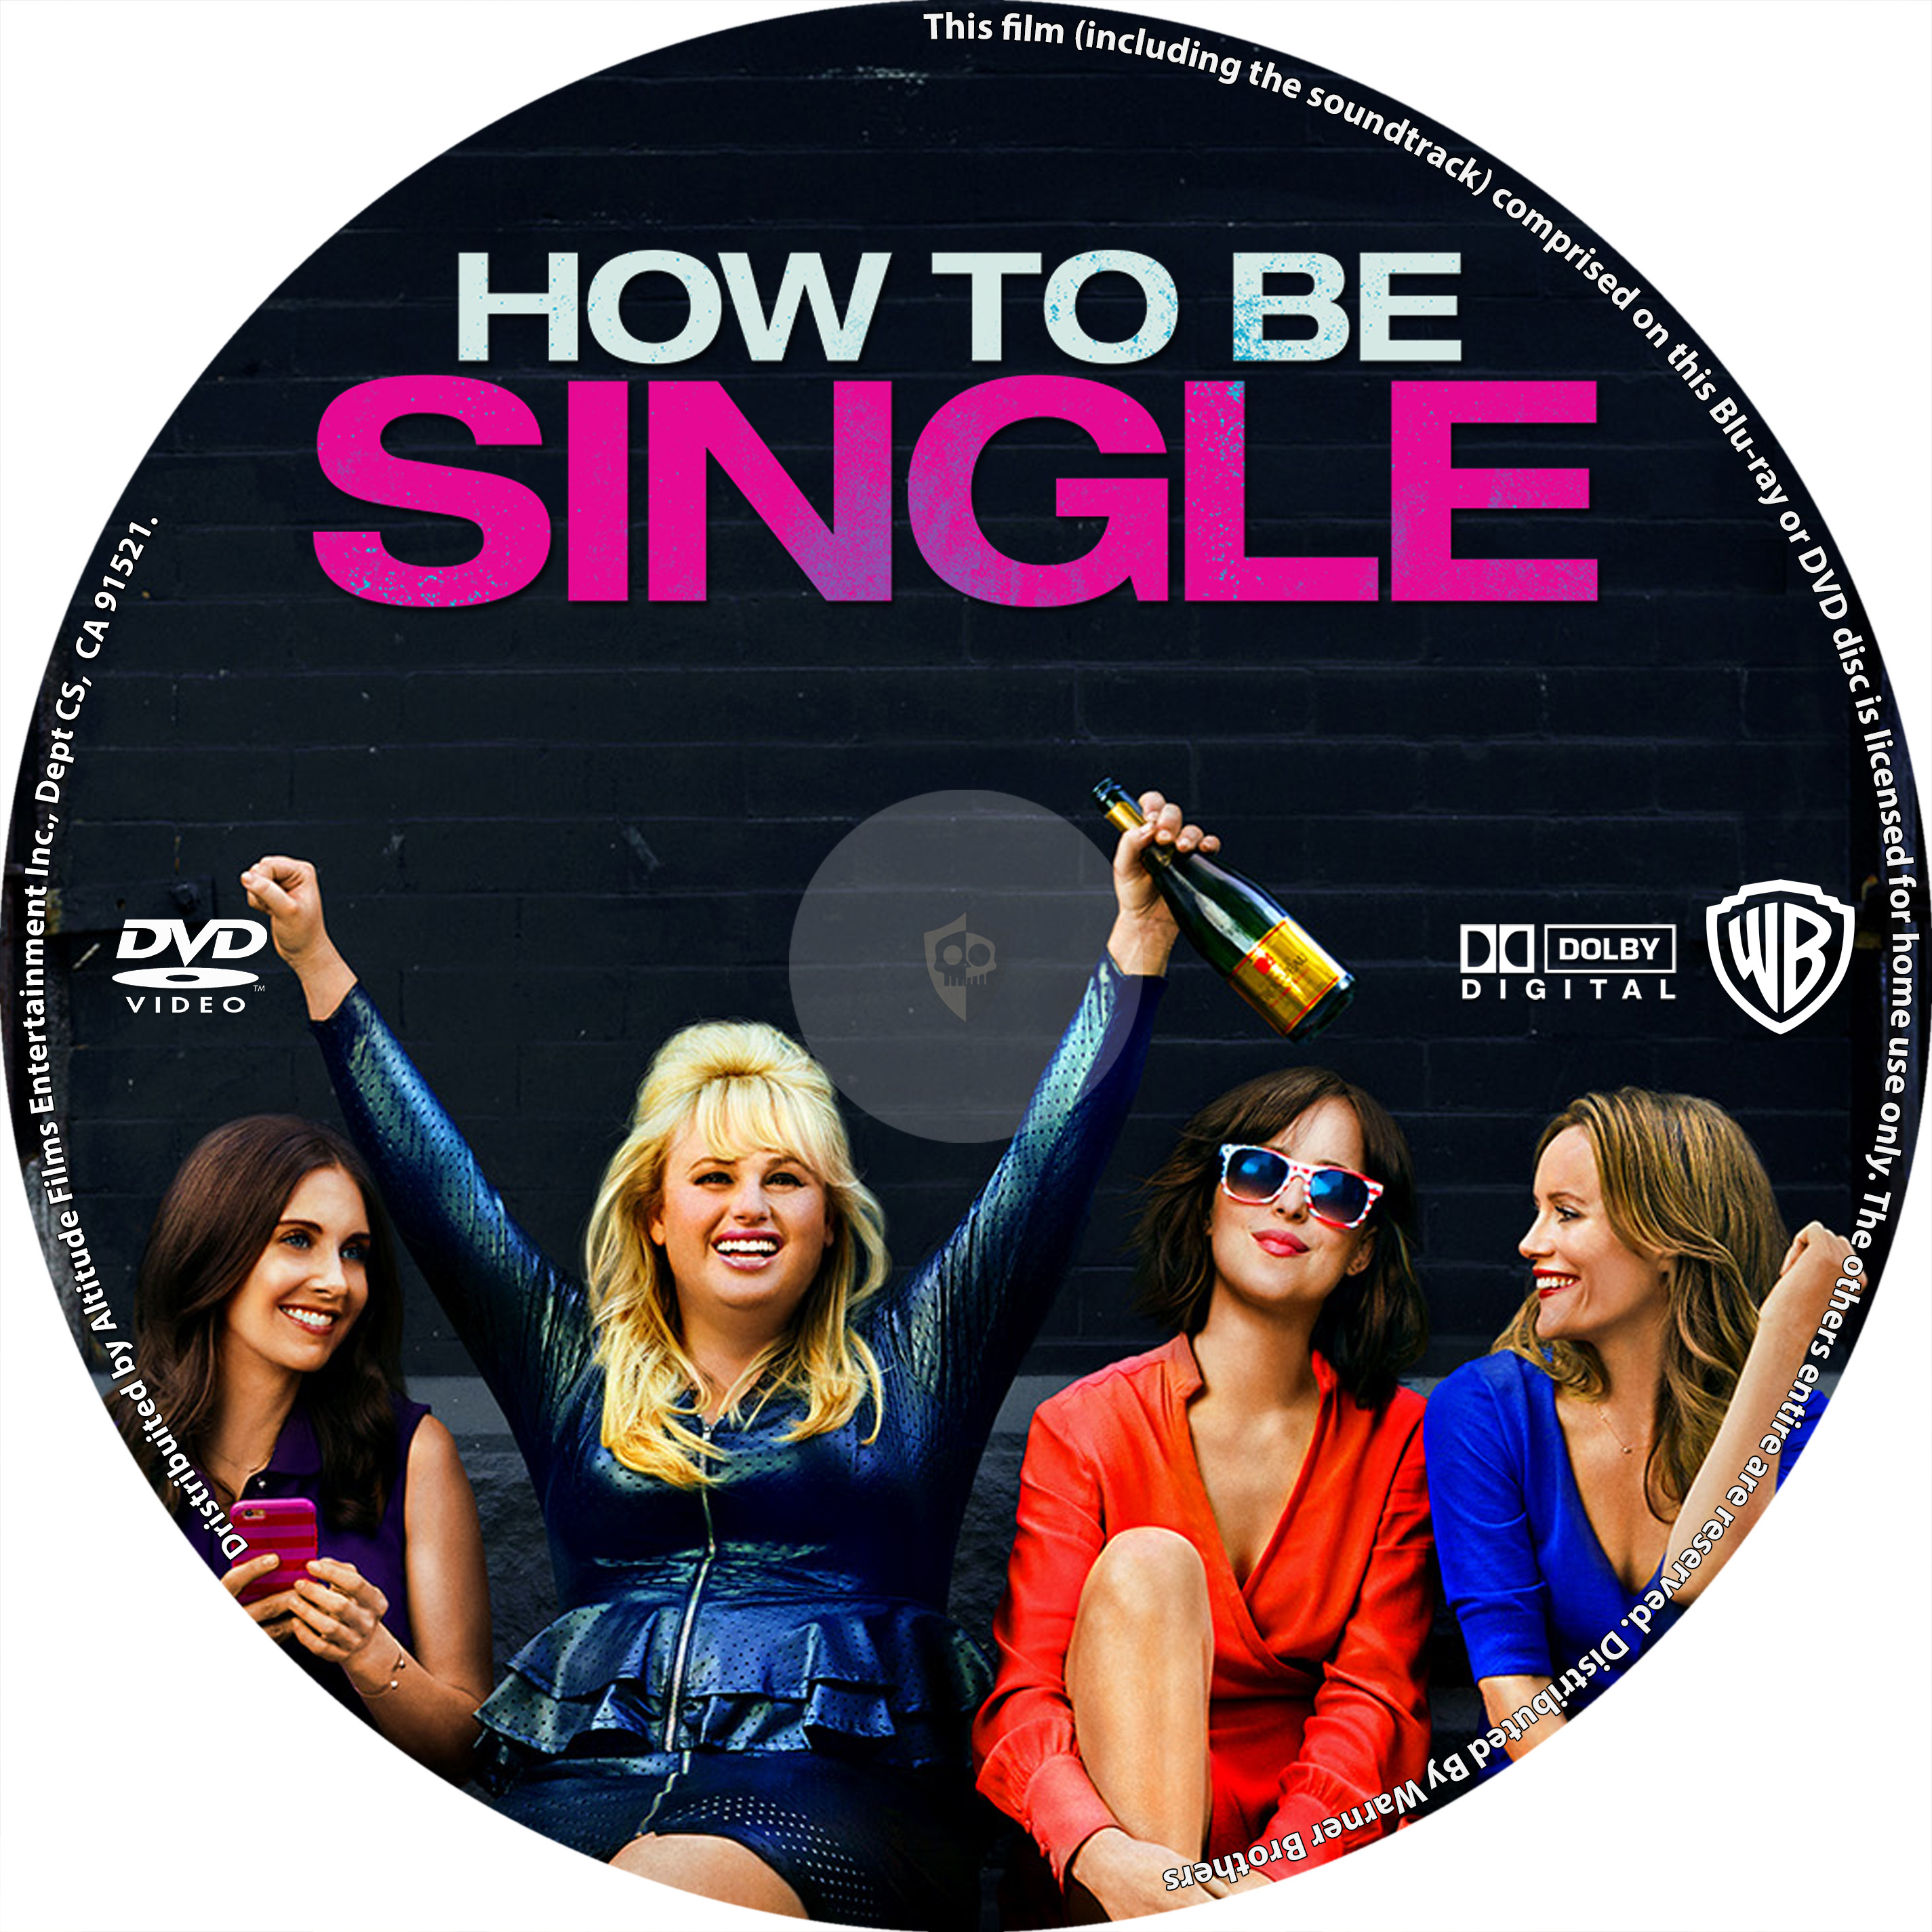 Coversx how to be single 2016 high quality dvd click here for full size image ccuart Images